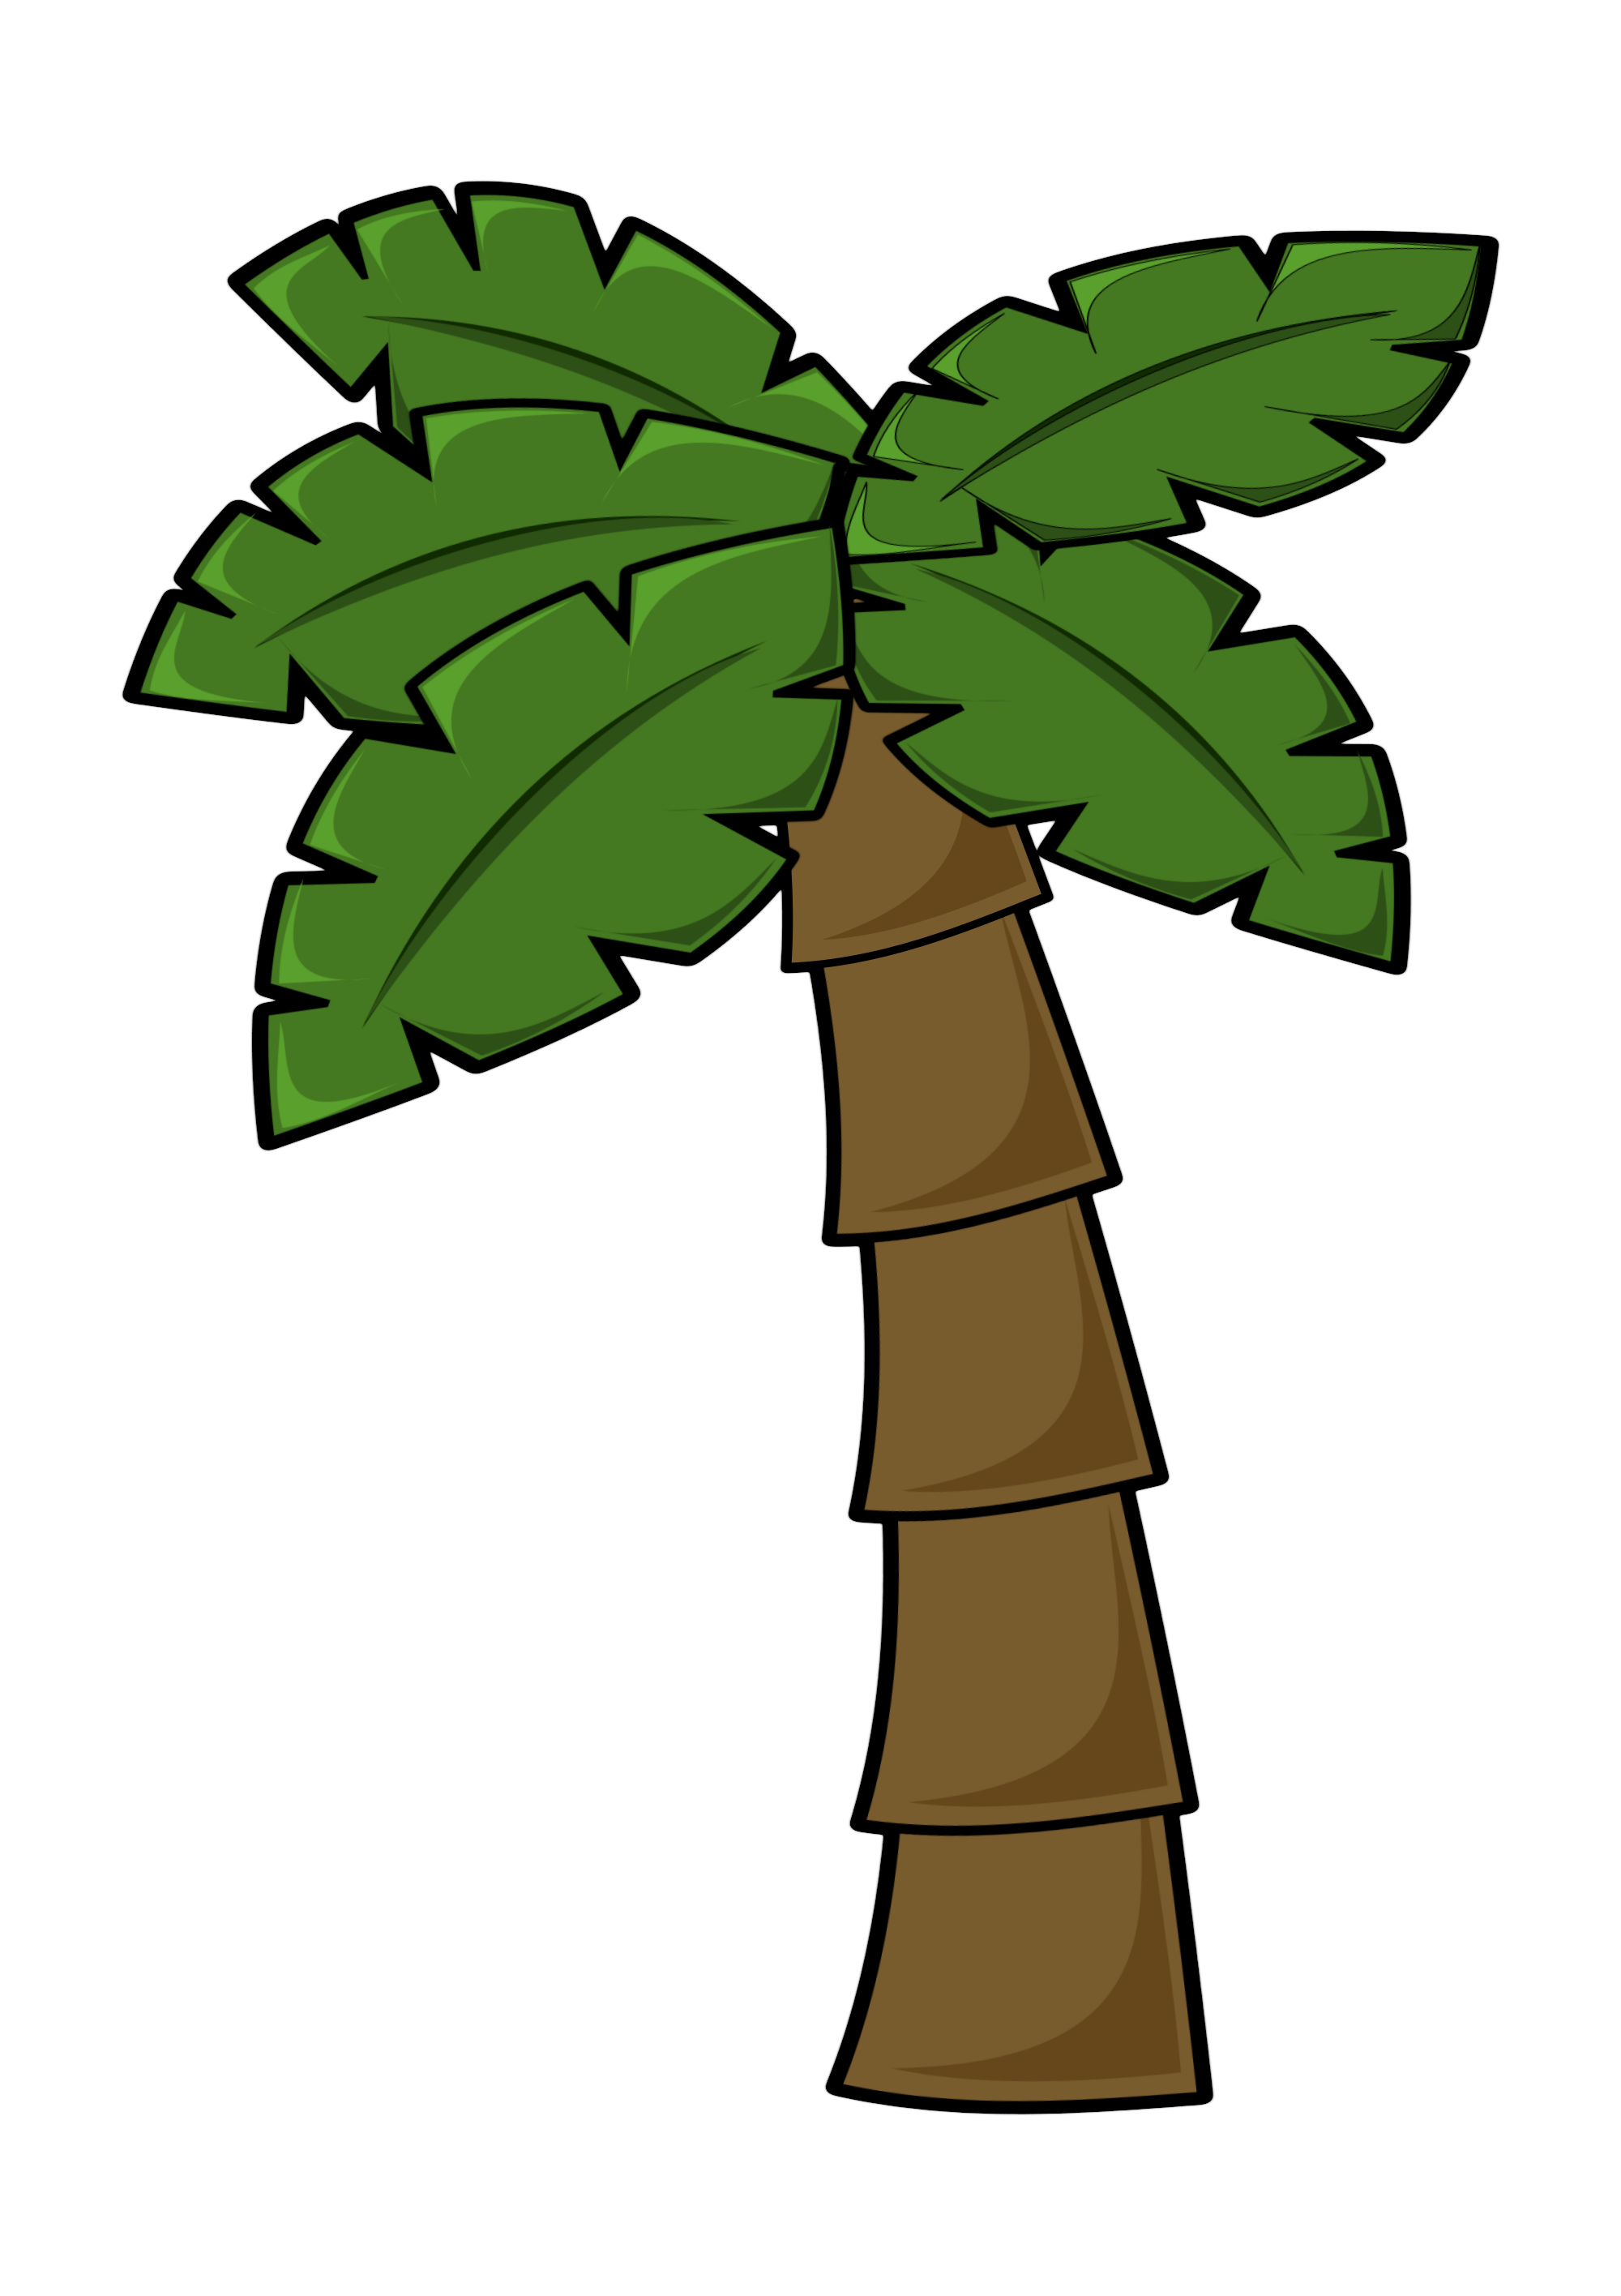 Tree clipart lake. Free simple cartoon palm